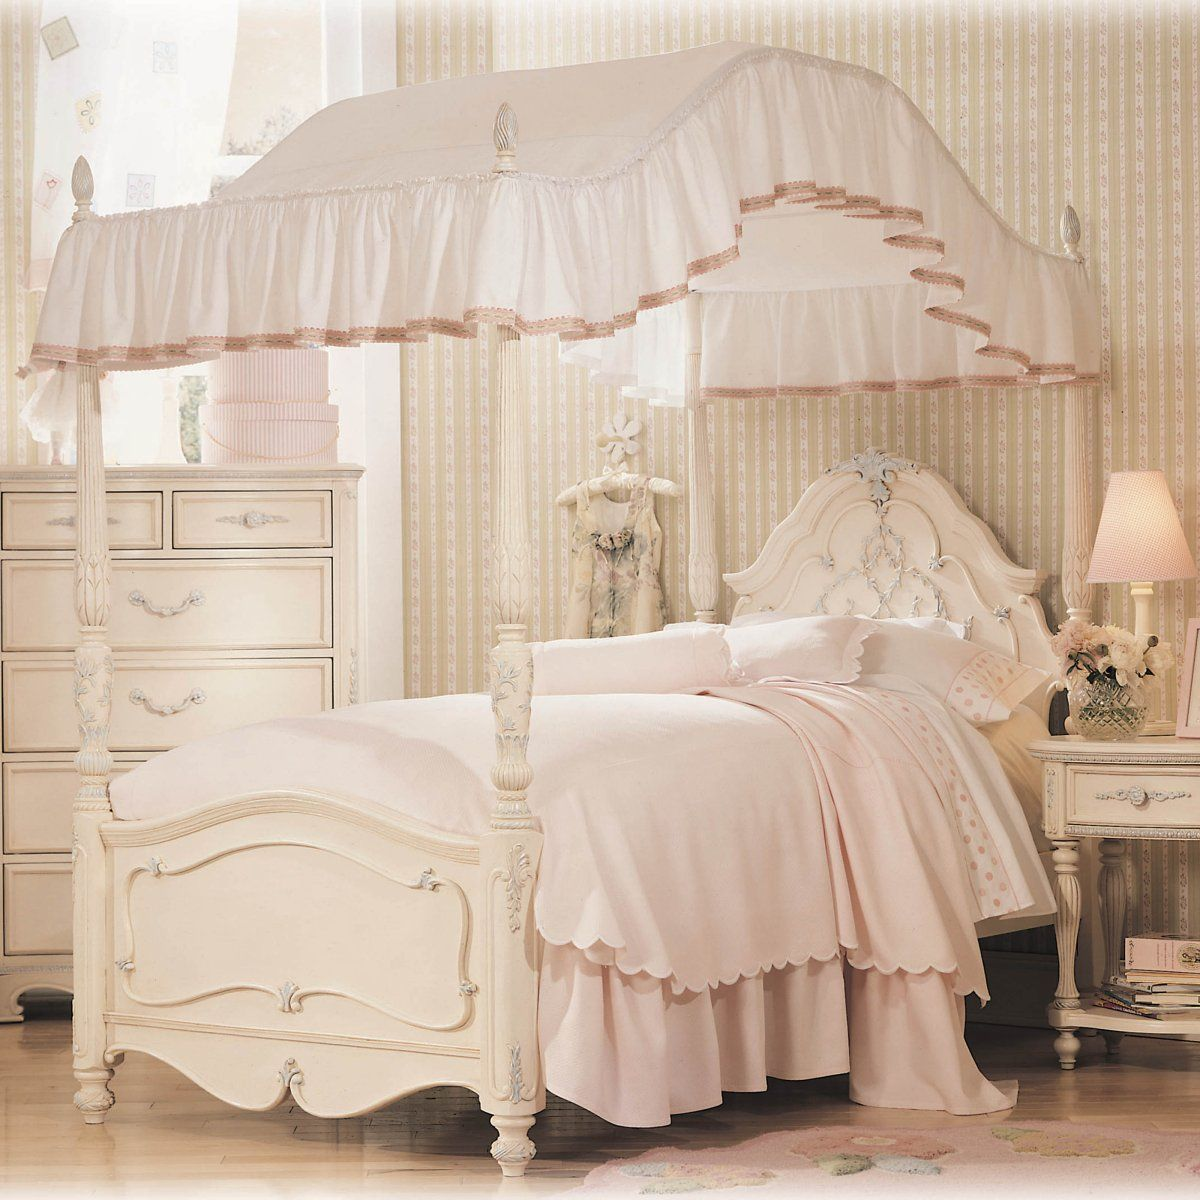 Bedroom: Small Beautiful Pink Canopy Bed For Girls, romantic ...